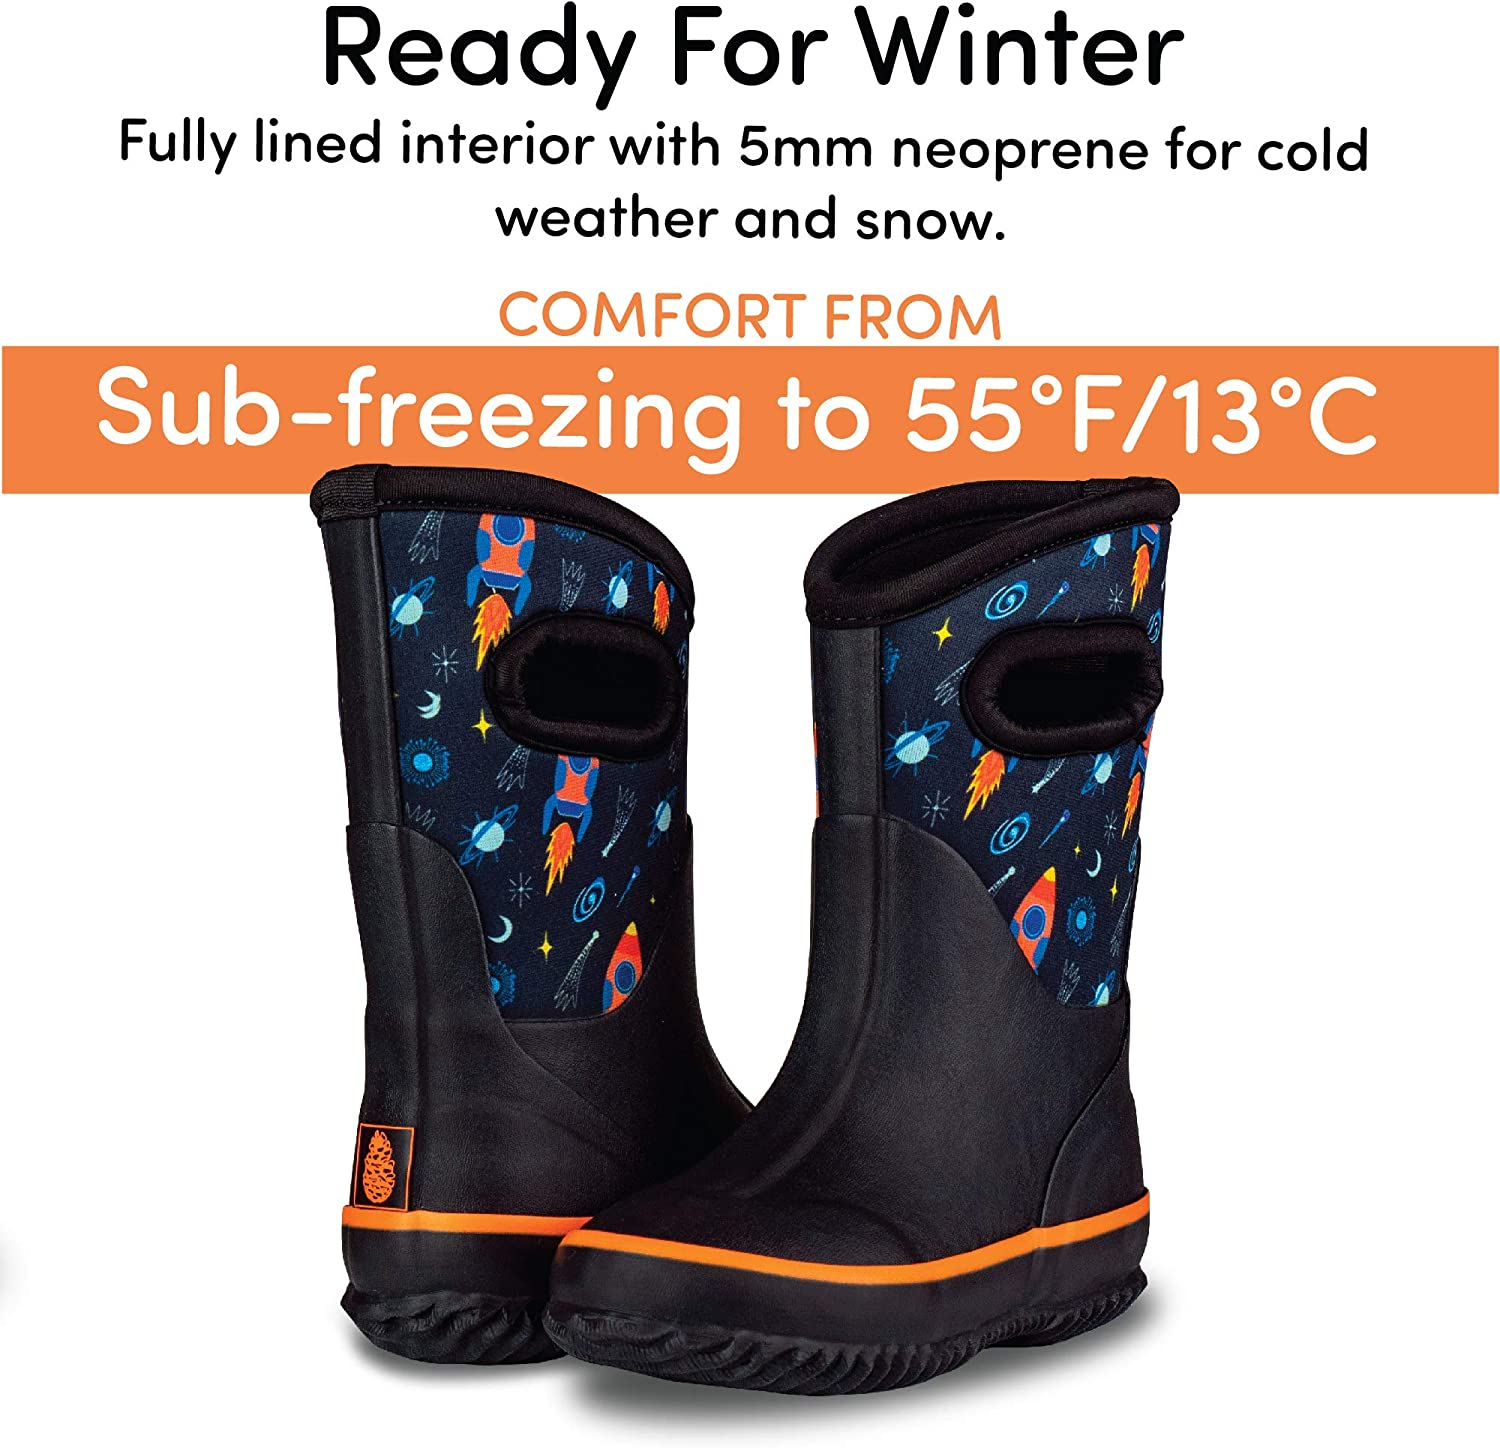 Rain and Muck Warm Neoprene Boots for Snow LONECONE Insulating All Weather MudBoots for Toddlers and Kids